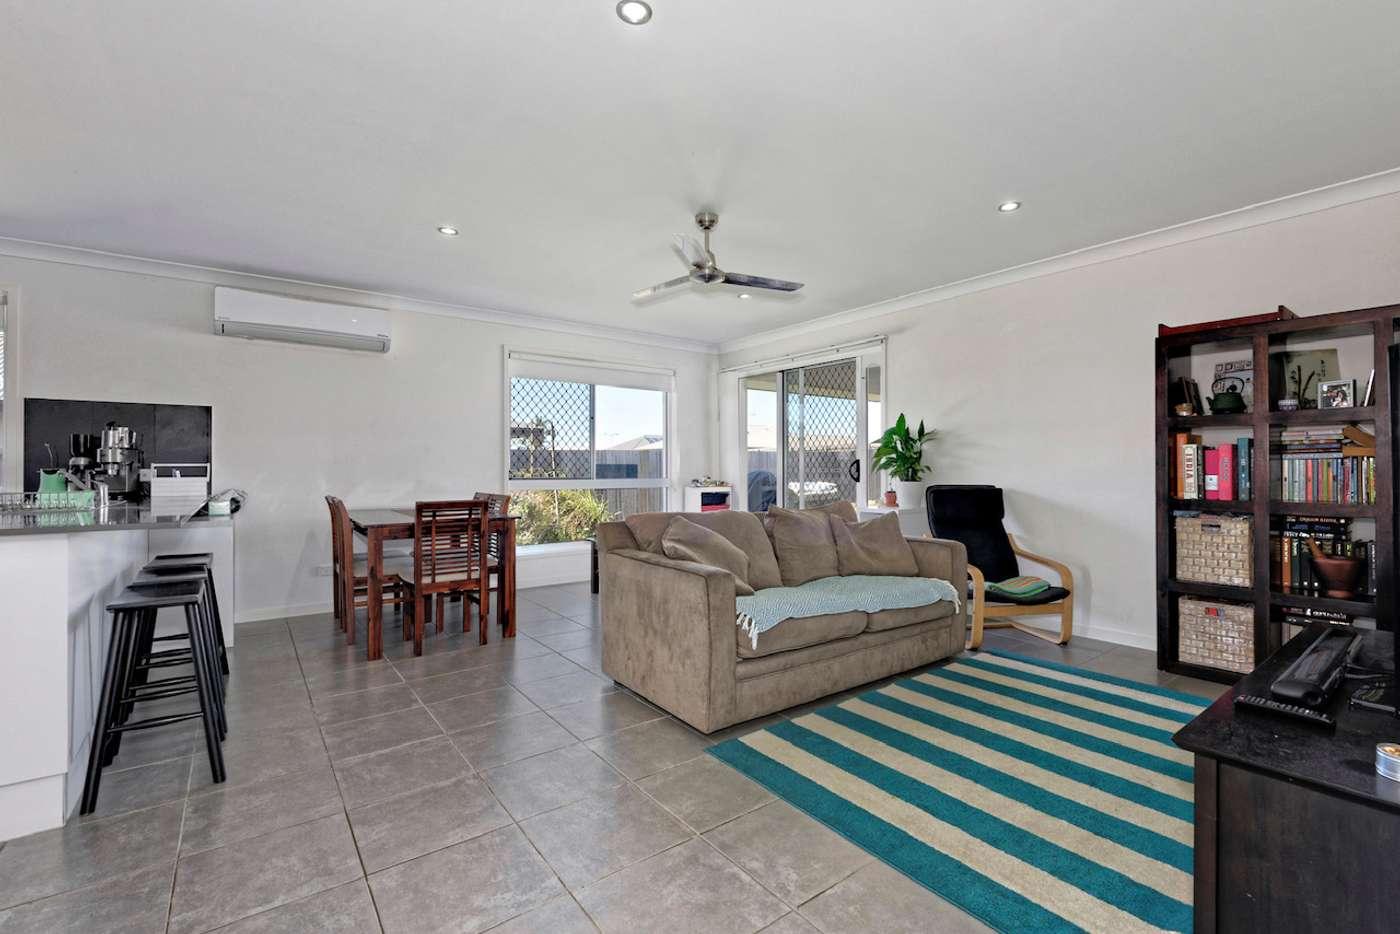 Sixth view of Homely house listing, 13 Chantilly Street, Bargara QLD 4670